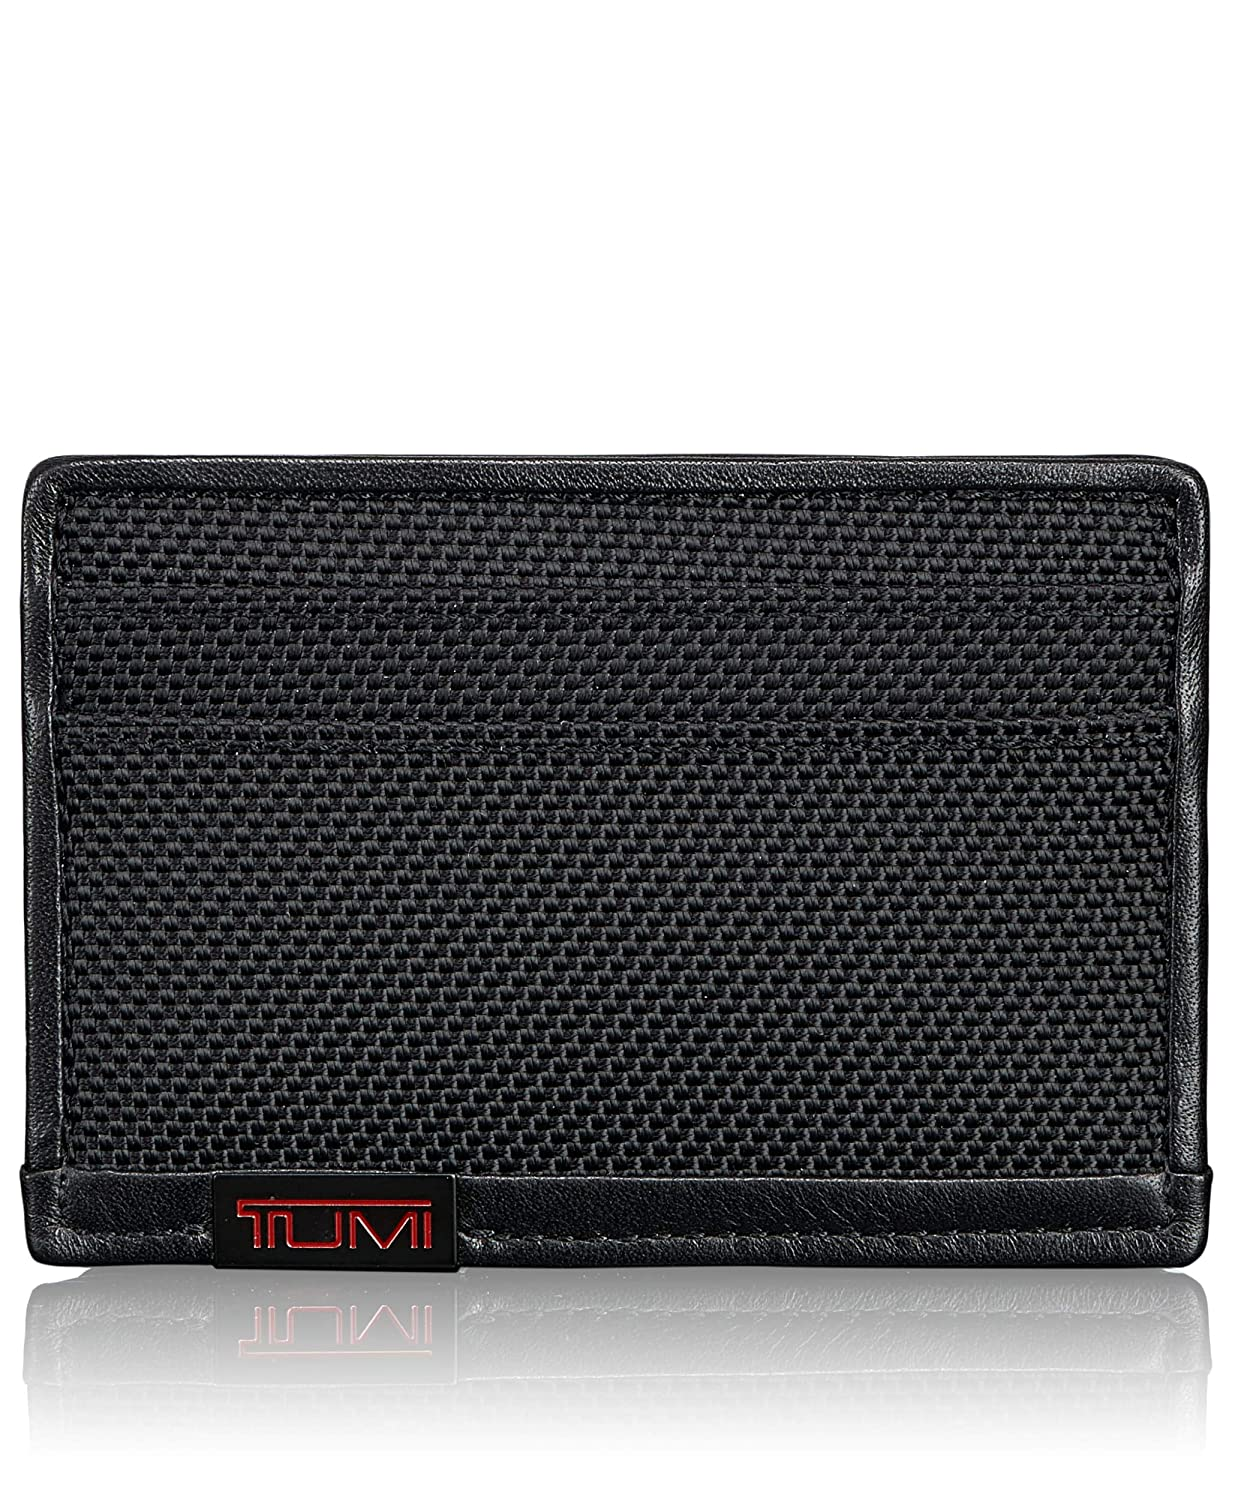 Tumi Alpha, Porte-cartes ID Lock Mince, Noir - 0119259DID